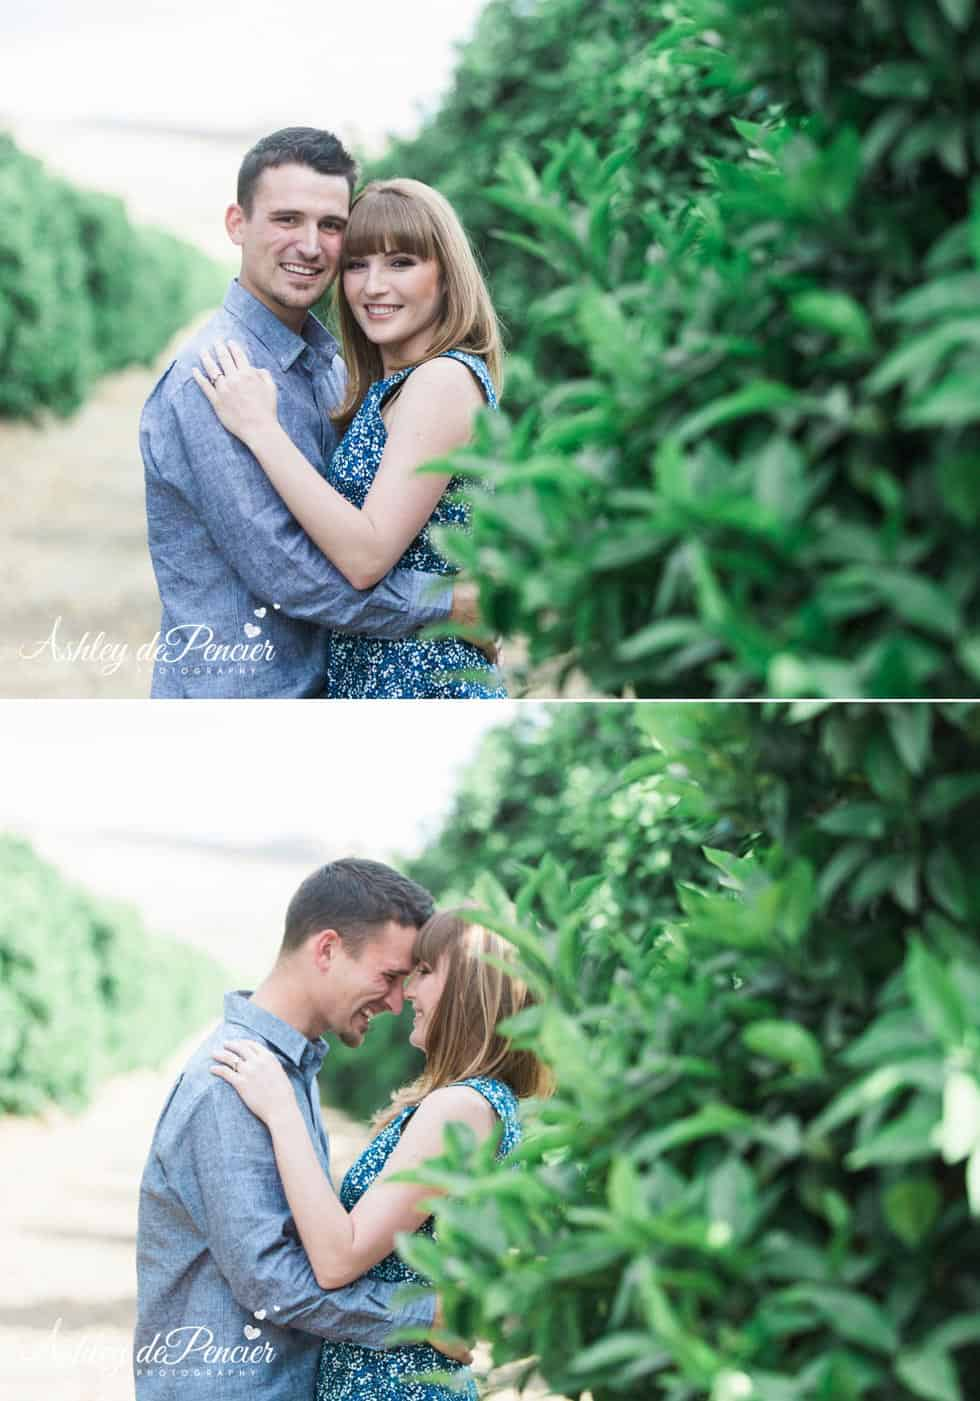 Engagement session in Orange Grove, California